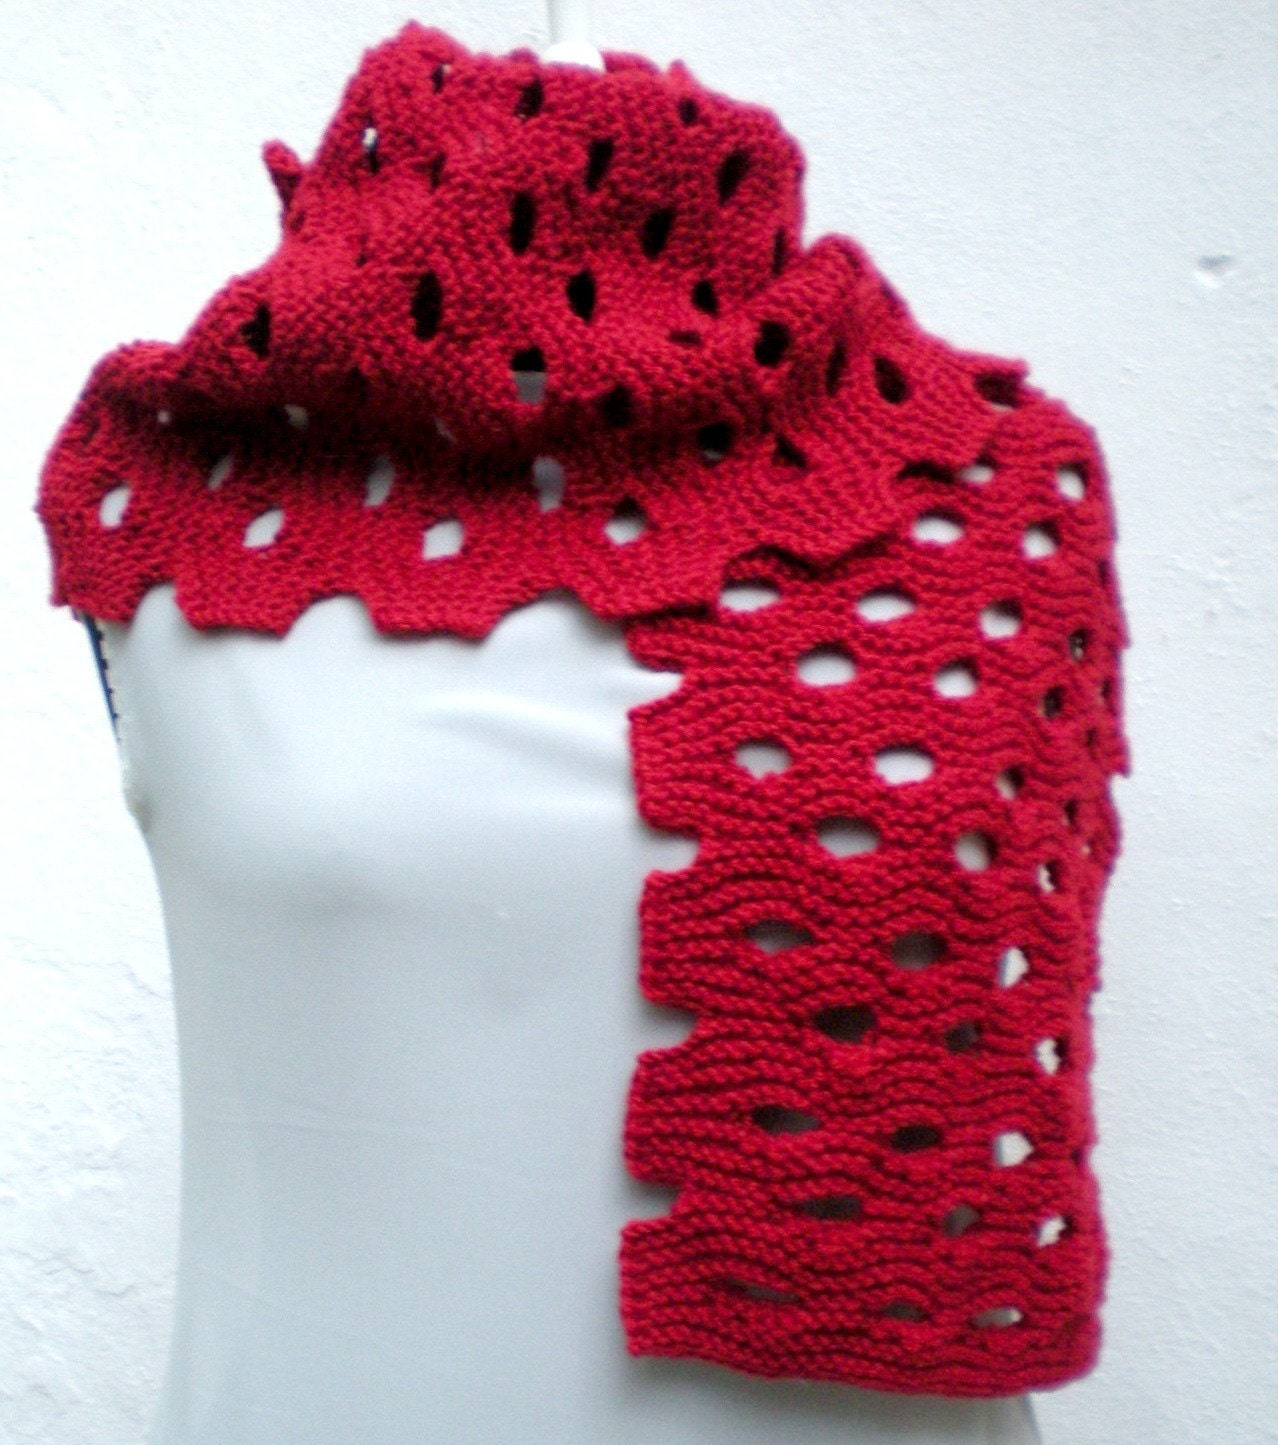 Knitting Hand Knitted  Red  Shawl  Scarf  ready to ship